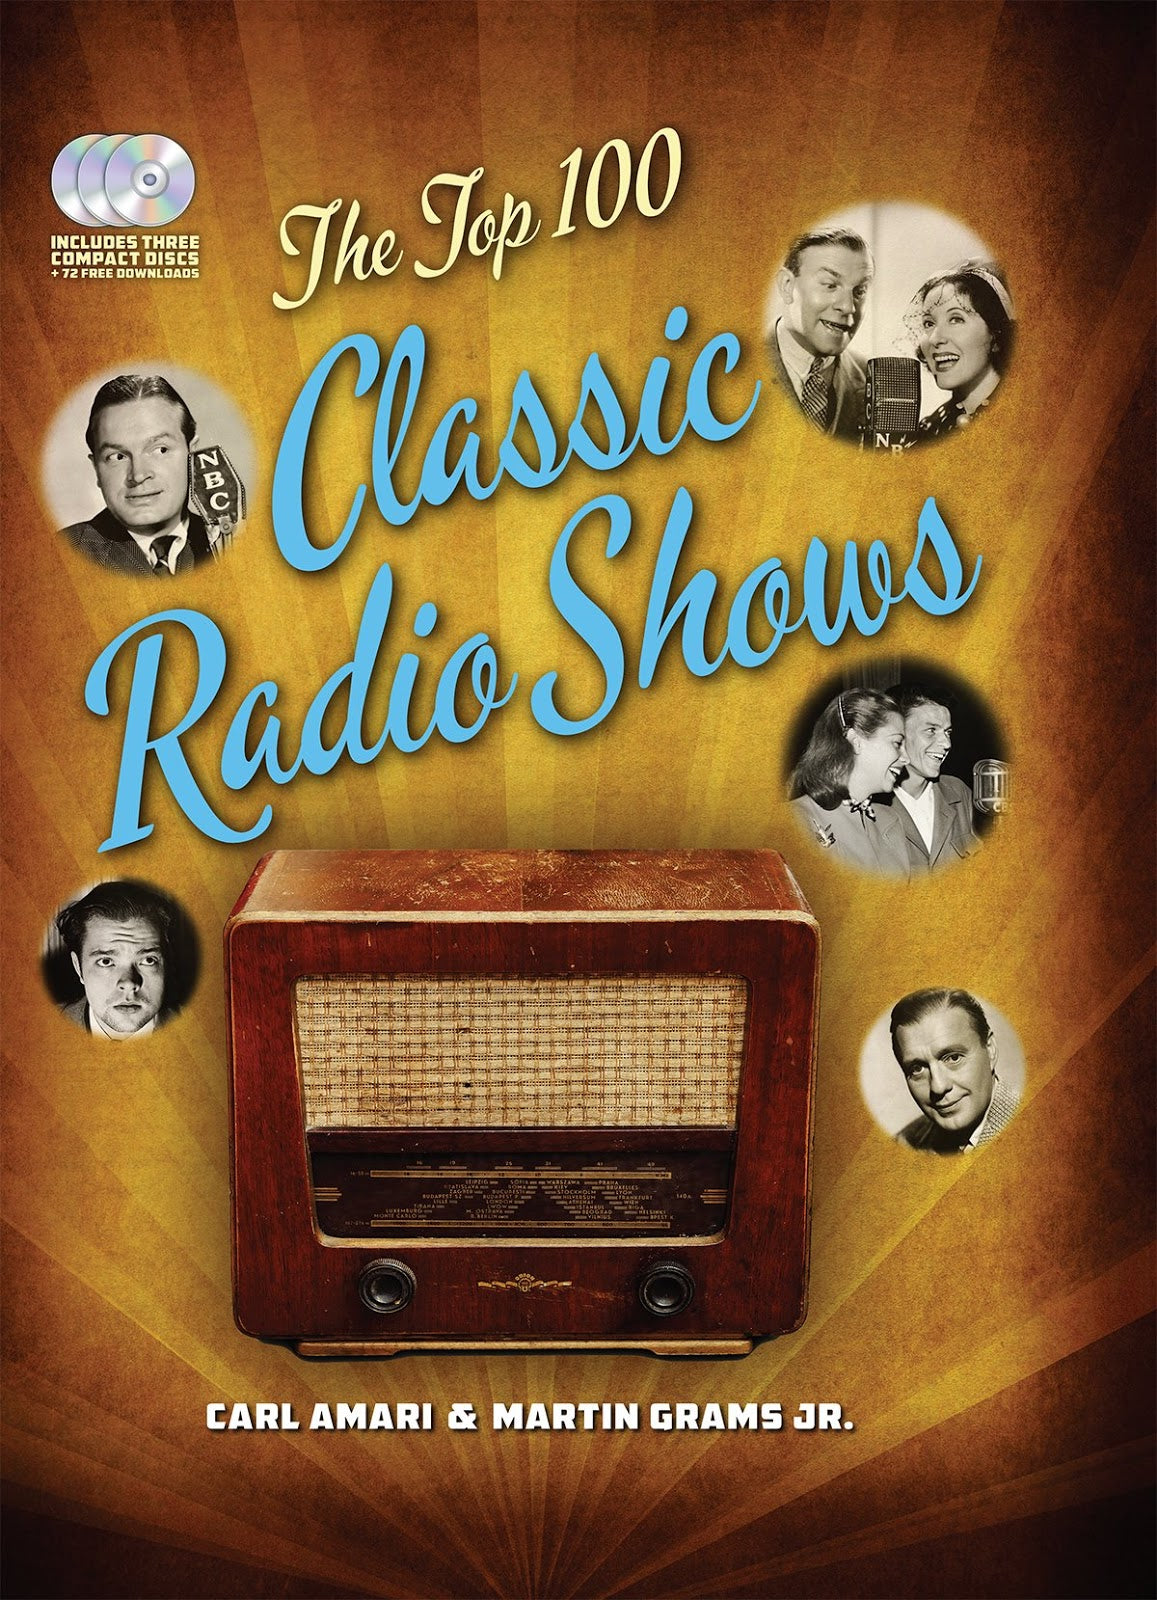 The Top 100 Classic Radio Shows